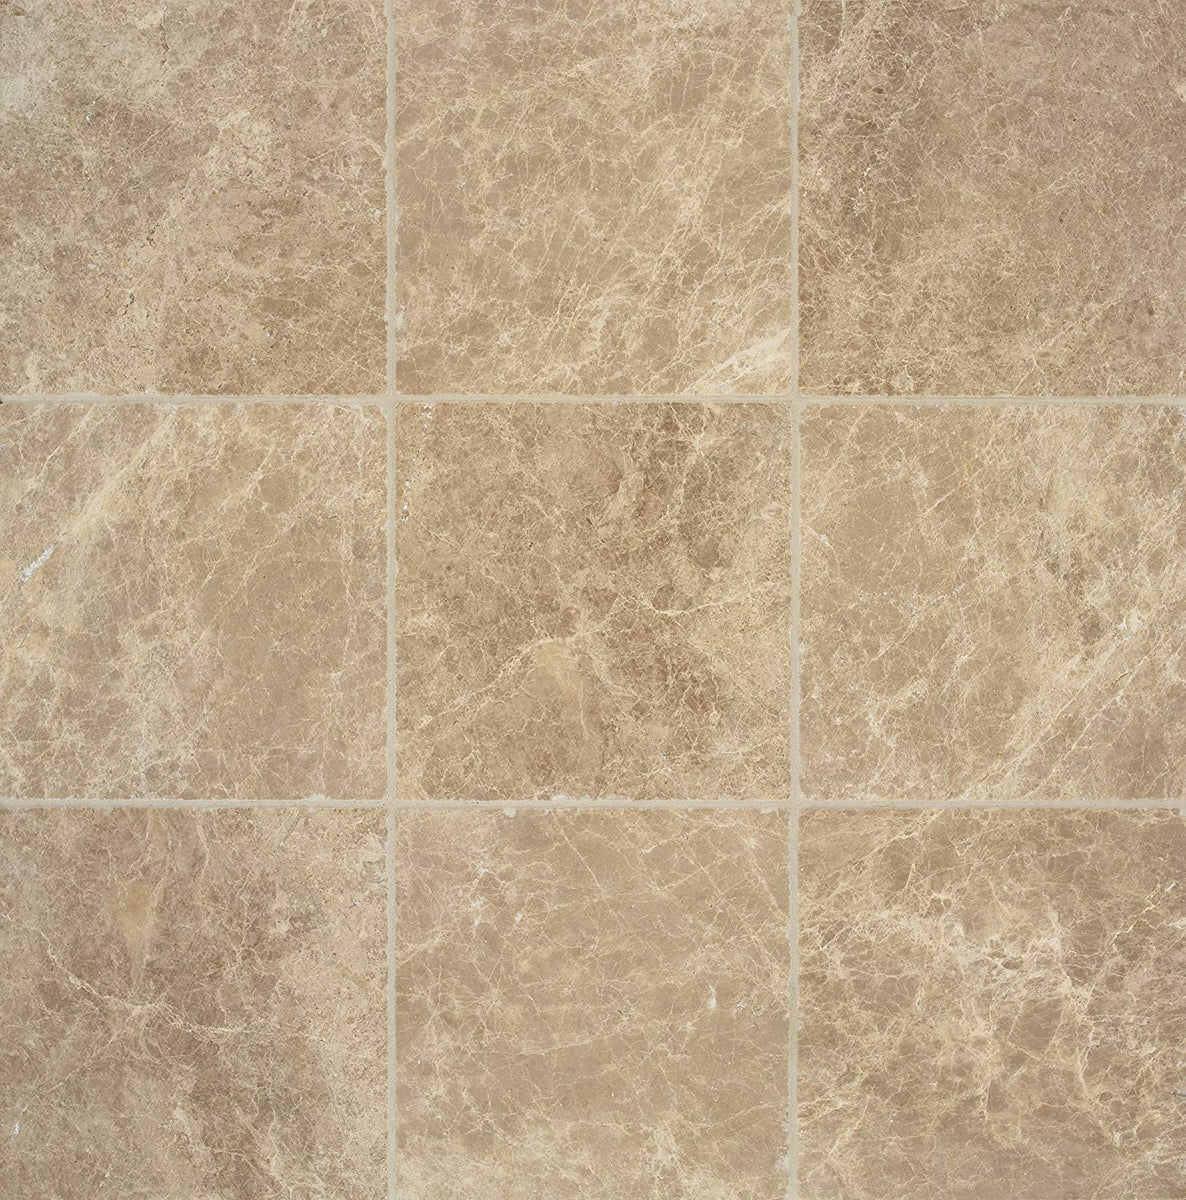 Arizona Tile 4 by 4-Inch Tumbled Marble Tile, Emperador Light, 10-Total  Square Feet